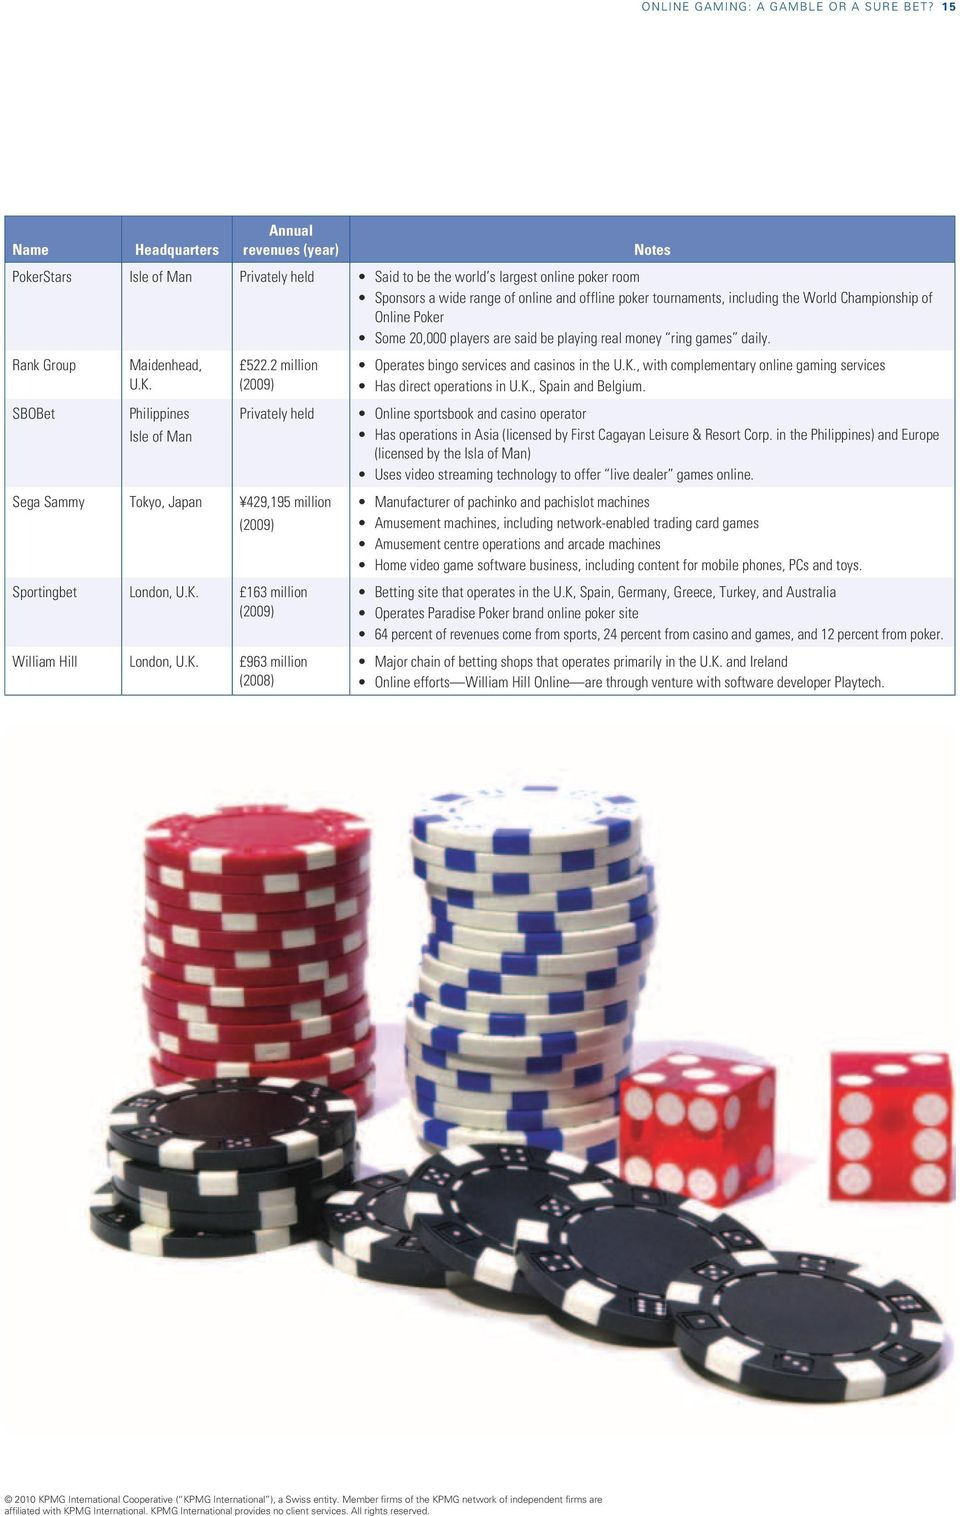 including the World Championship of Online Poker Some 20,000 players are said be playing real money ring games daily. Rank Group SBOBet Maidenhead, U.K. Philippines Isle of Man 522.